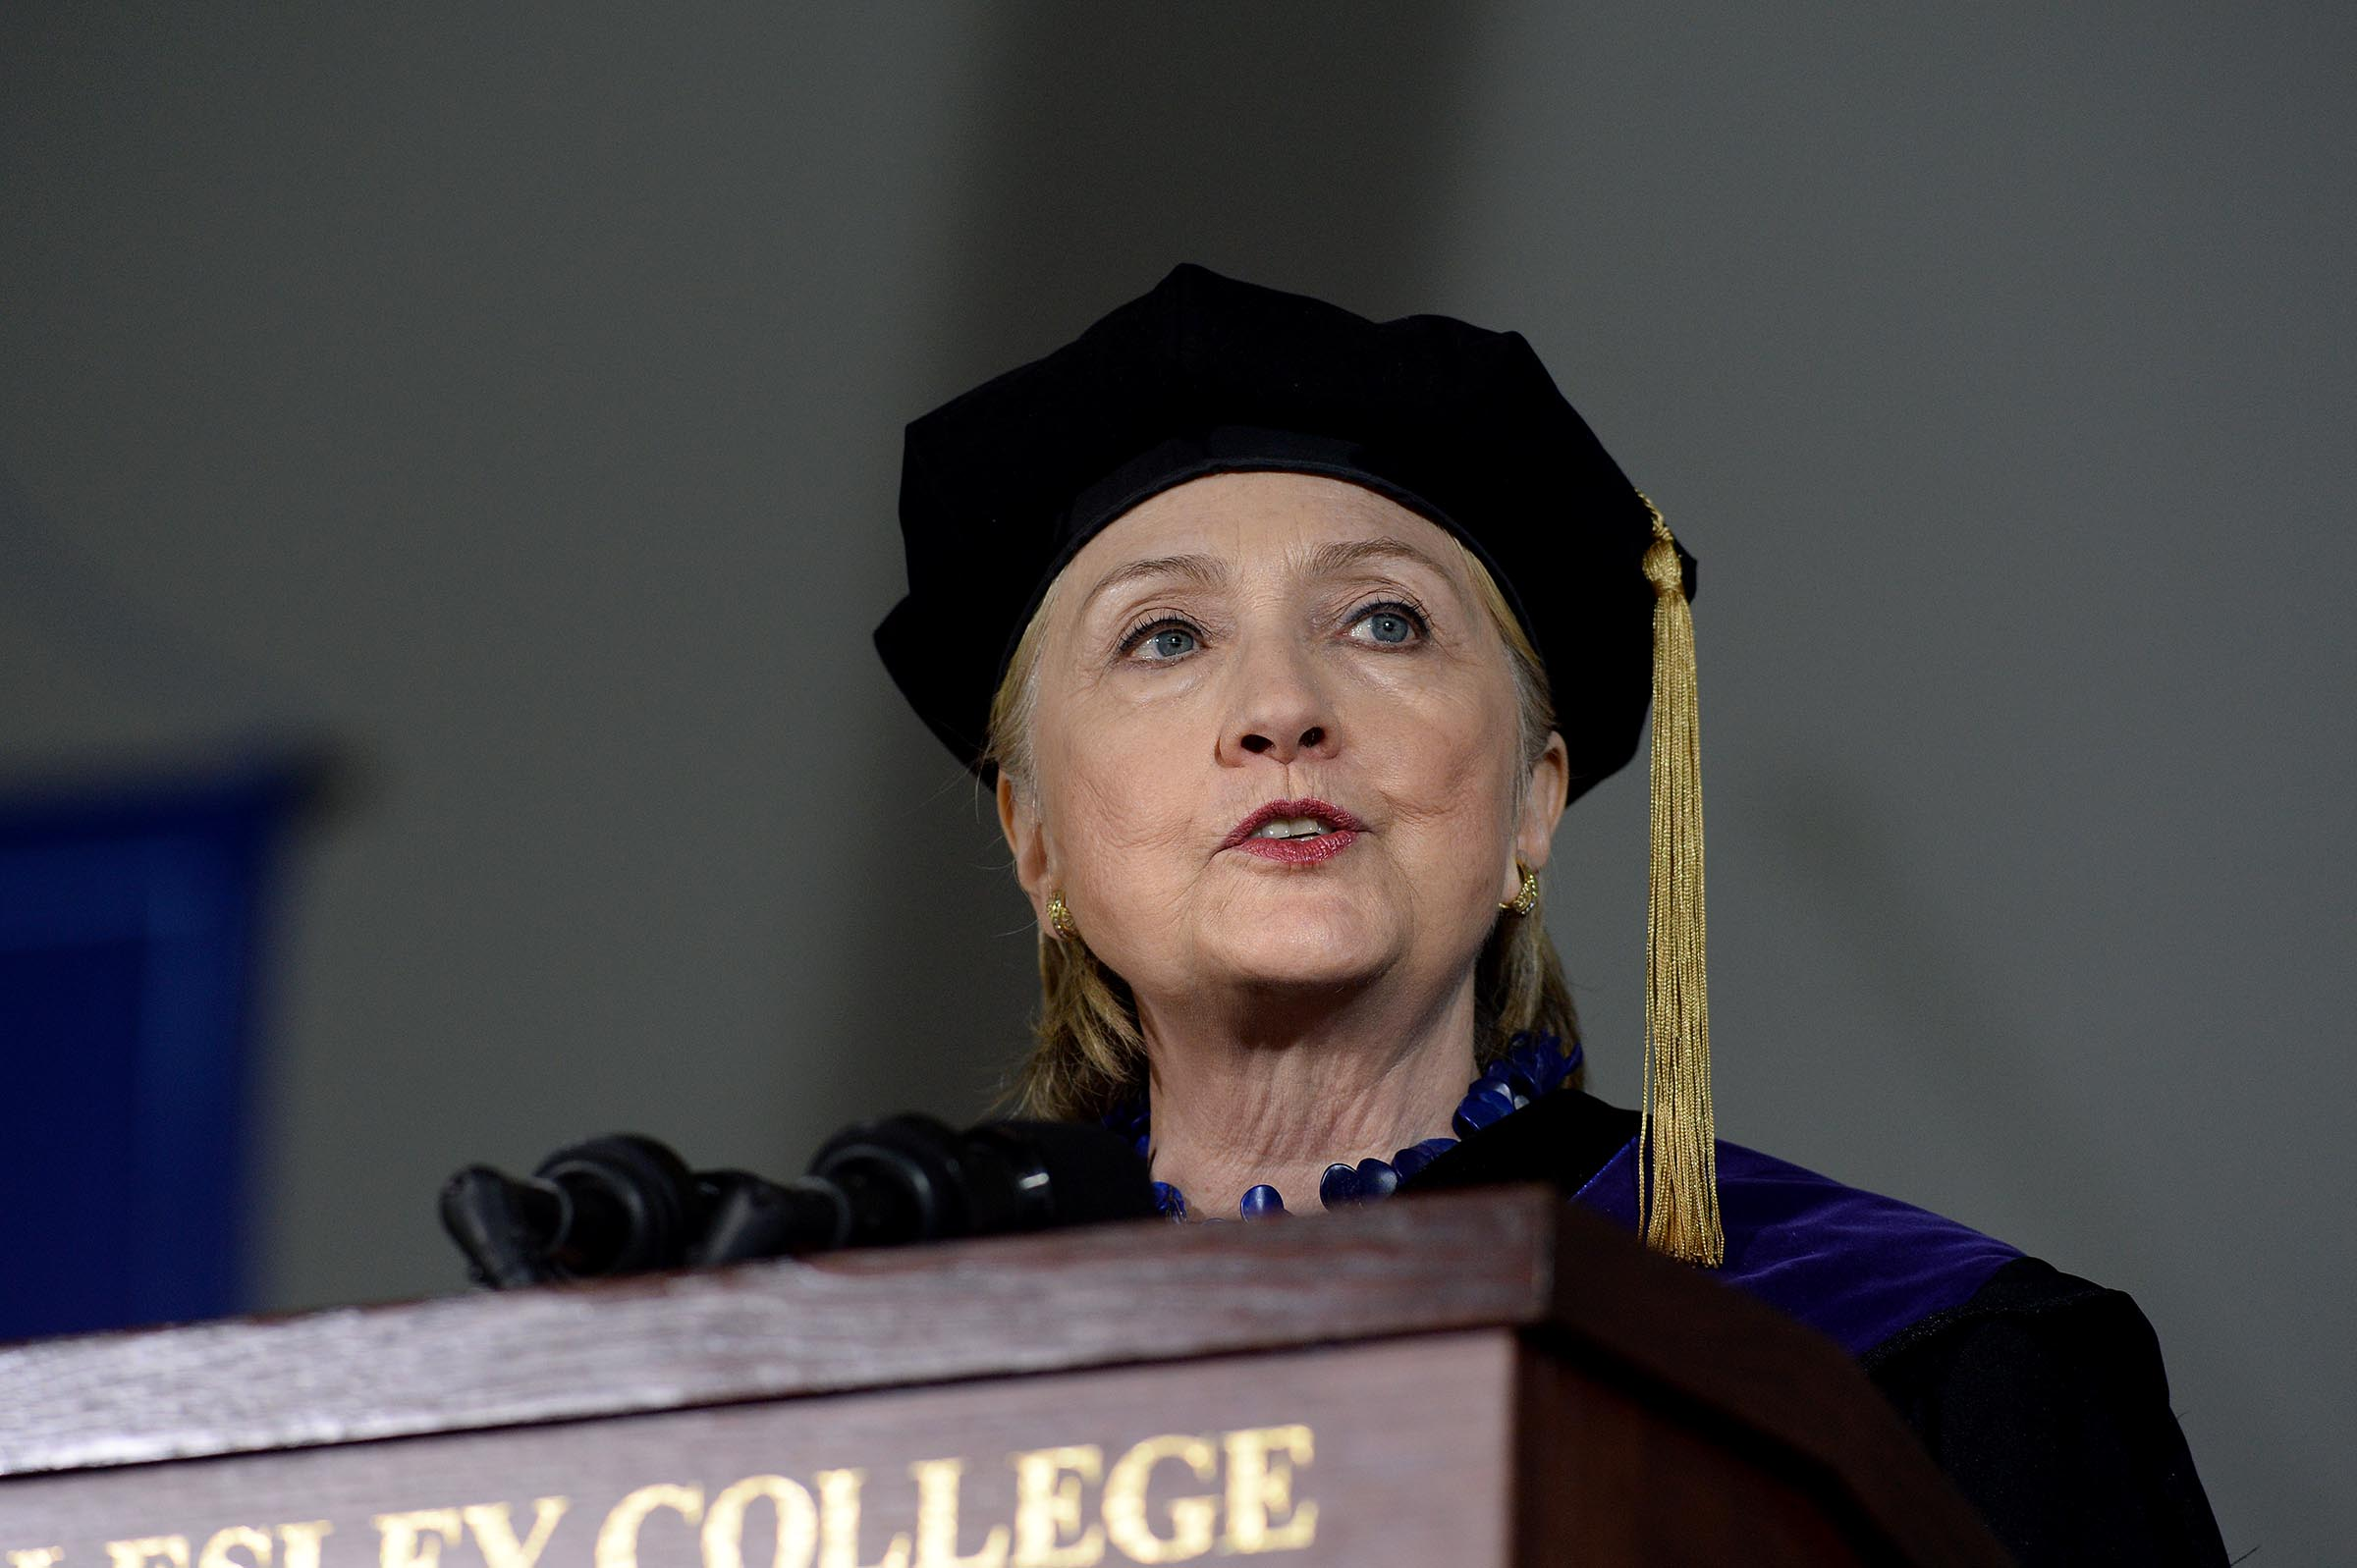 Hillary Clinton speaks at commencement at Wellesley College May 26, 2017 in Wellesley, Massachusetts. Clinton graduated from Wellesley College in 1969.